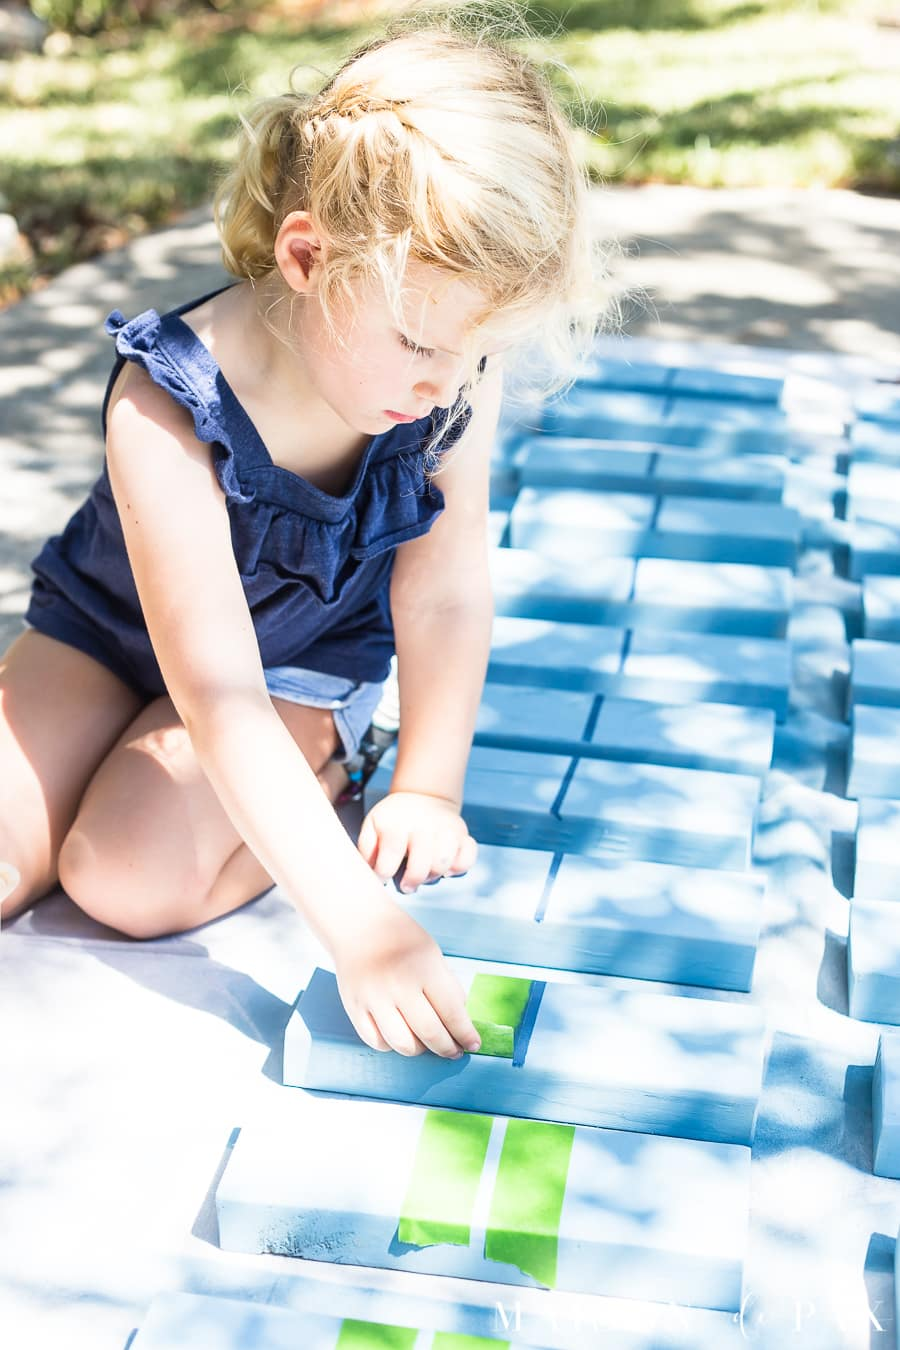 Make outdoor games with your kids: teach your kids to build! #familyfun #familyproject #outdoorgames #kidfriendlyproject #diyproject